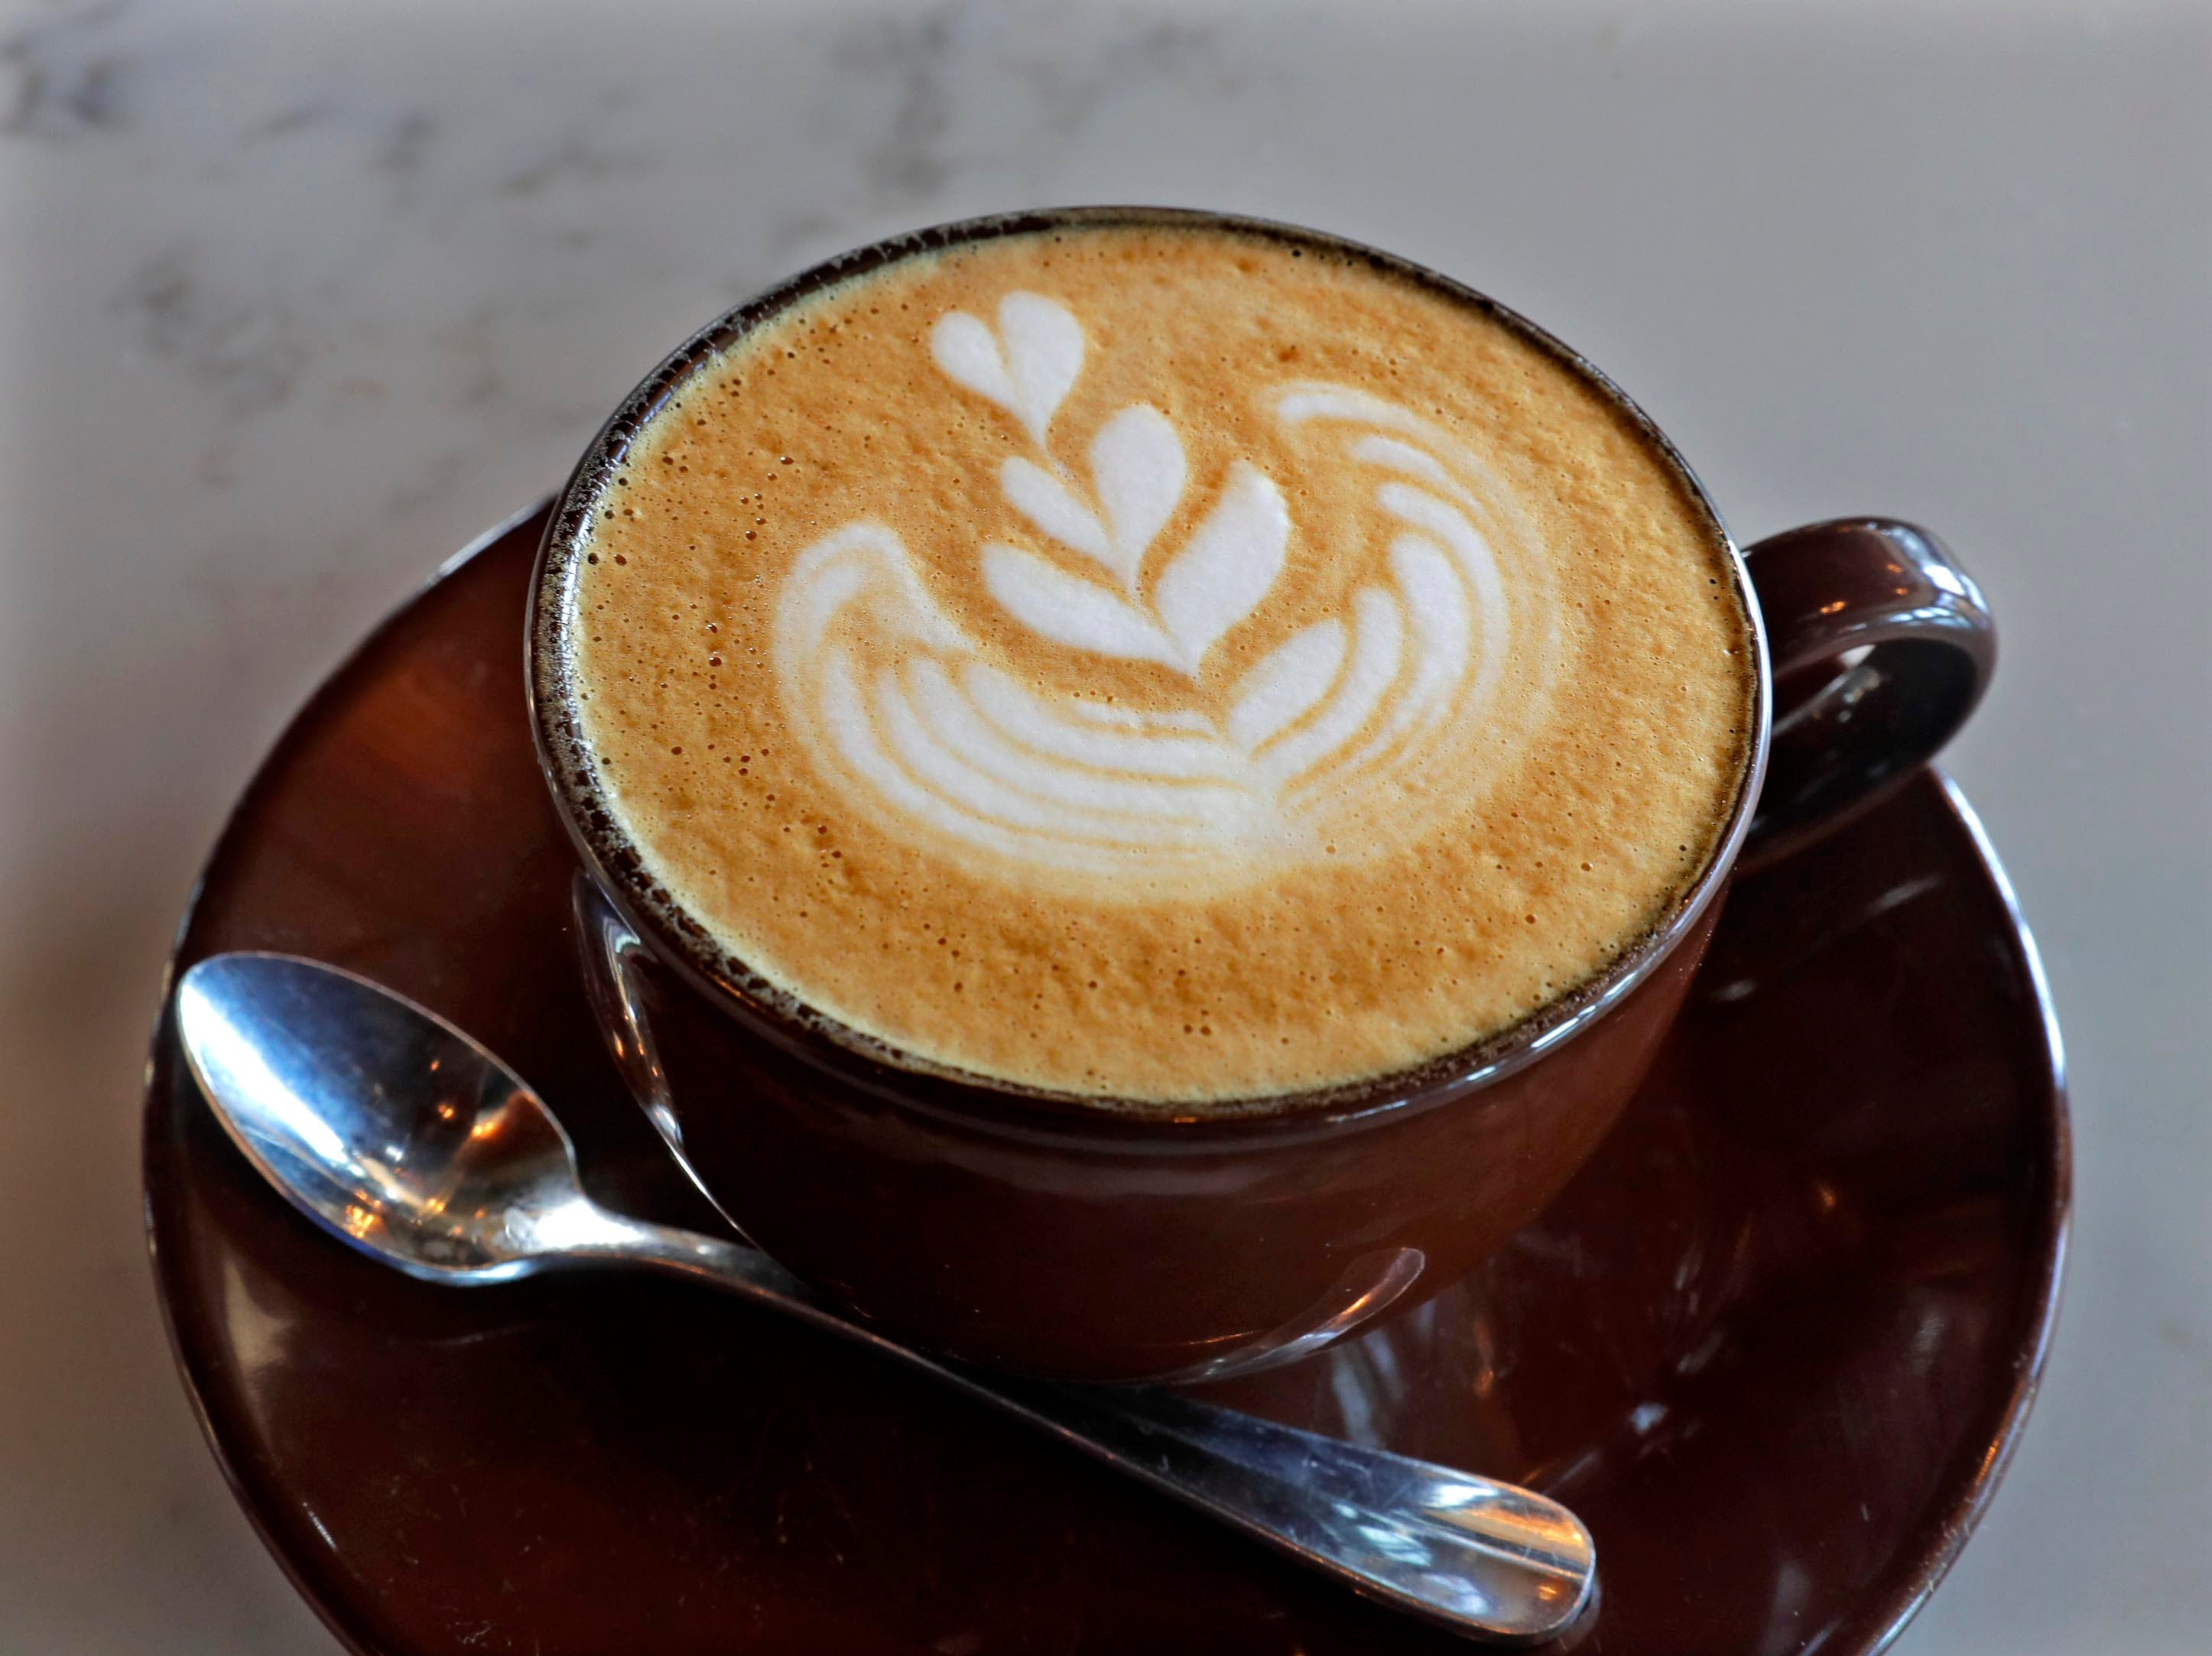 A cappuccino from Uncle Wolfie's Breakfast Tavern.